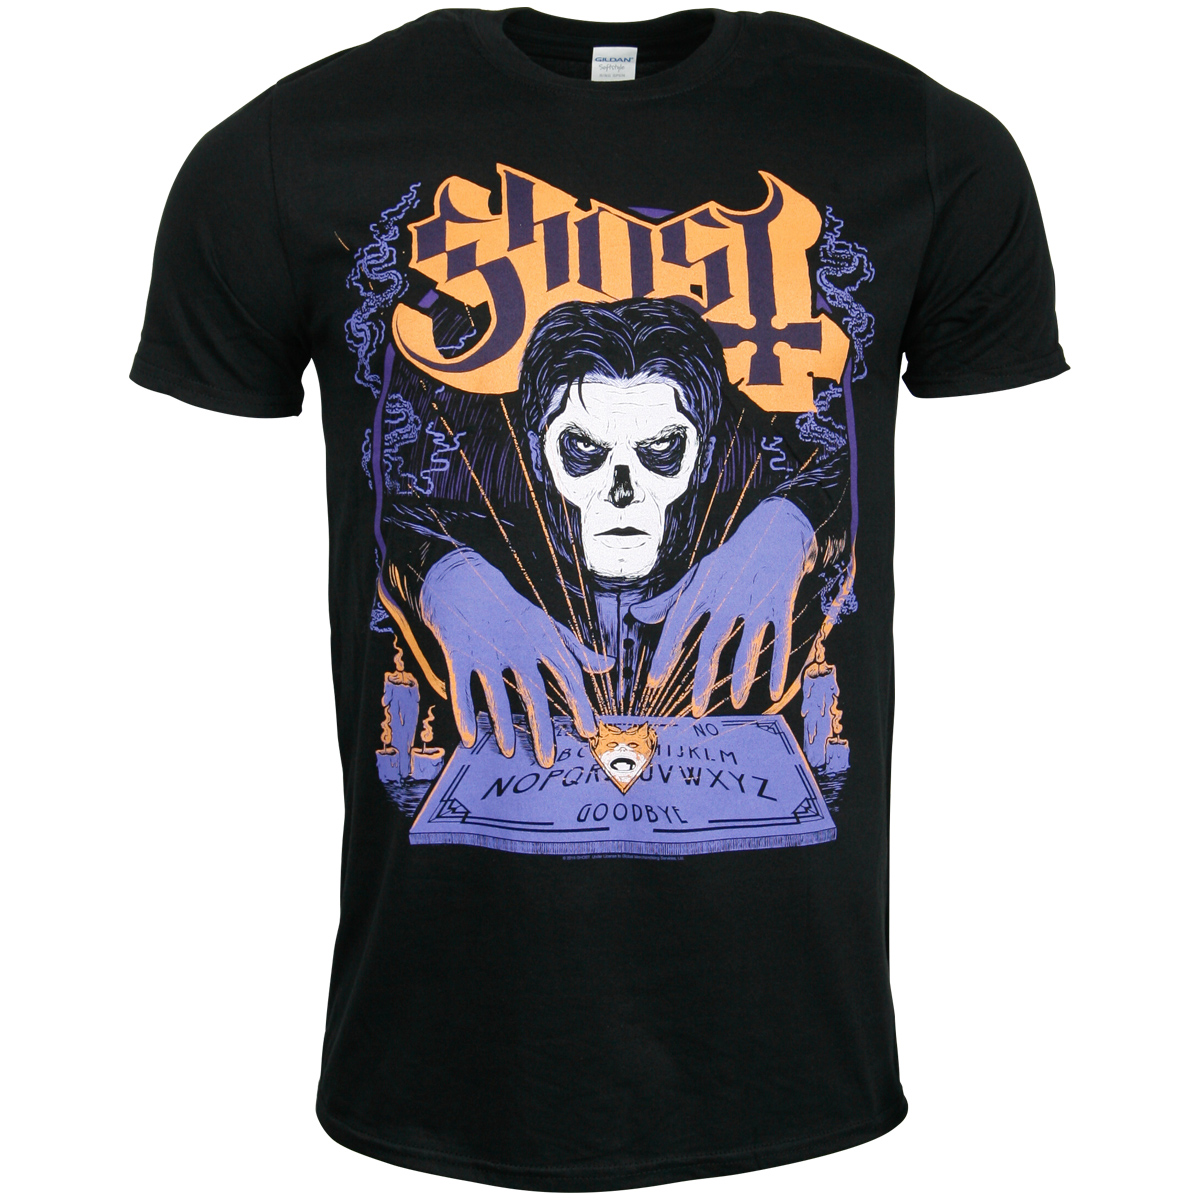 Ghost - T-Shirt Witchboard - schwarz